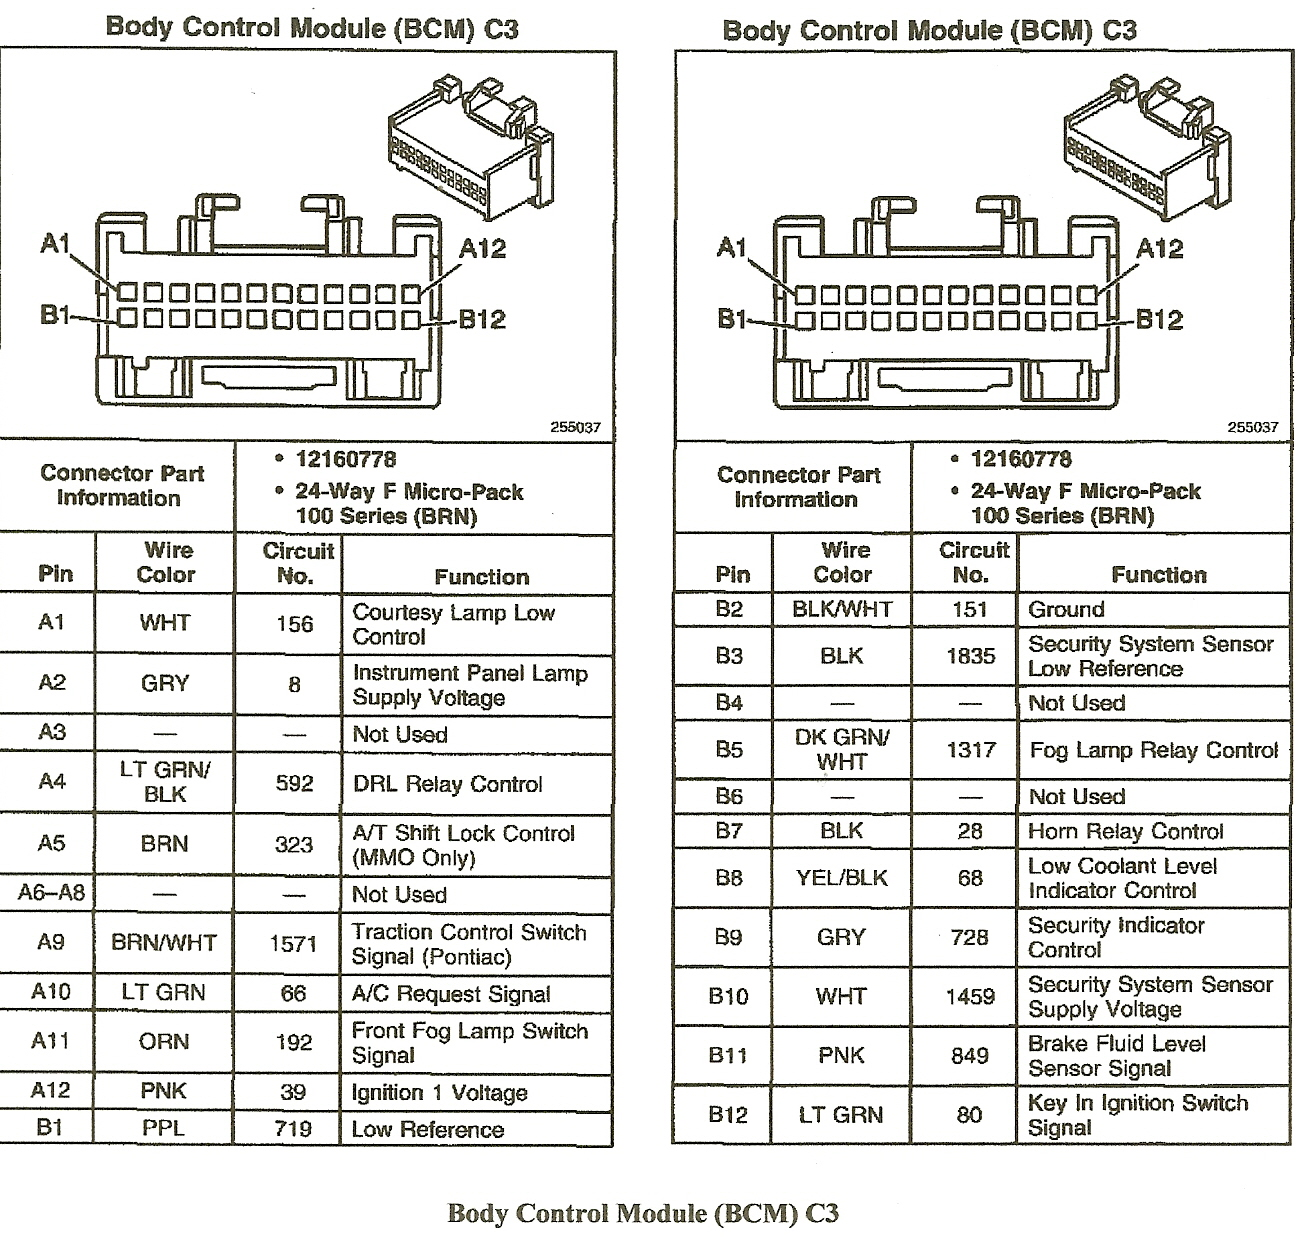 Zy 6859 Diagram Likewise 2003 Chevy Cavalier Radio Wiring Diagram Moreover Download Diagram